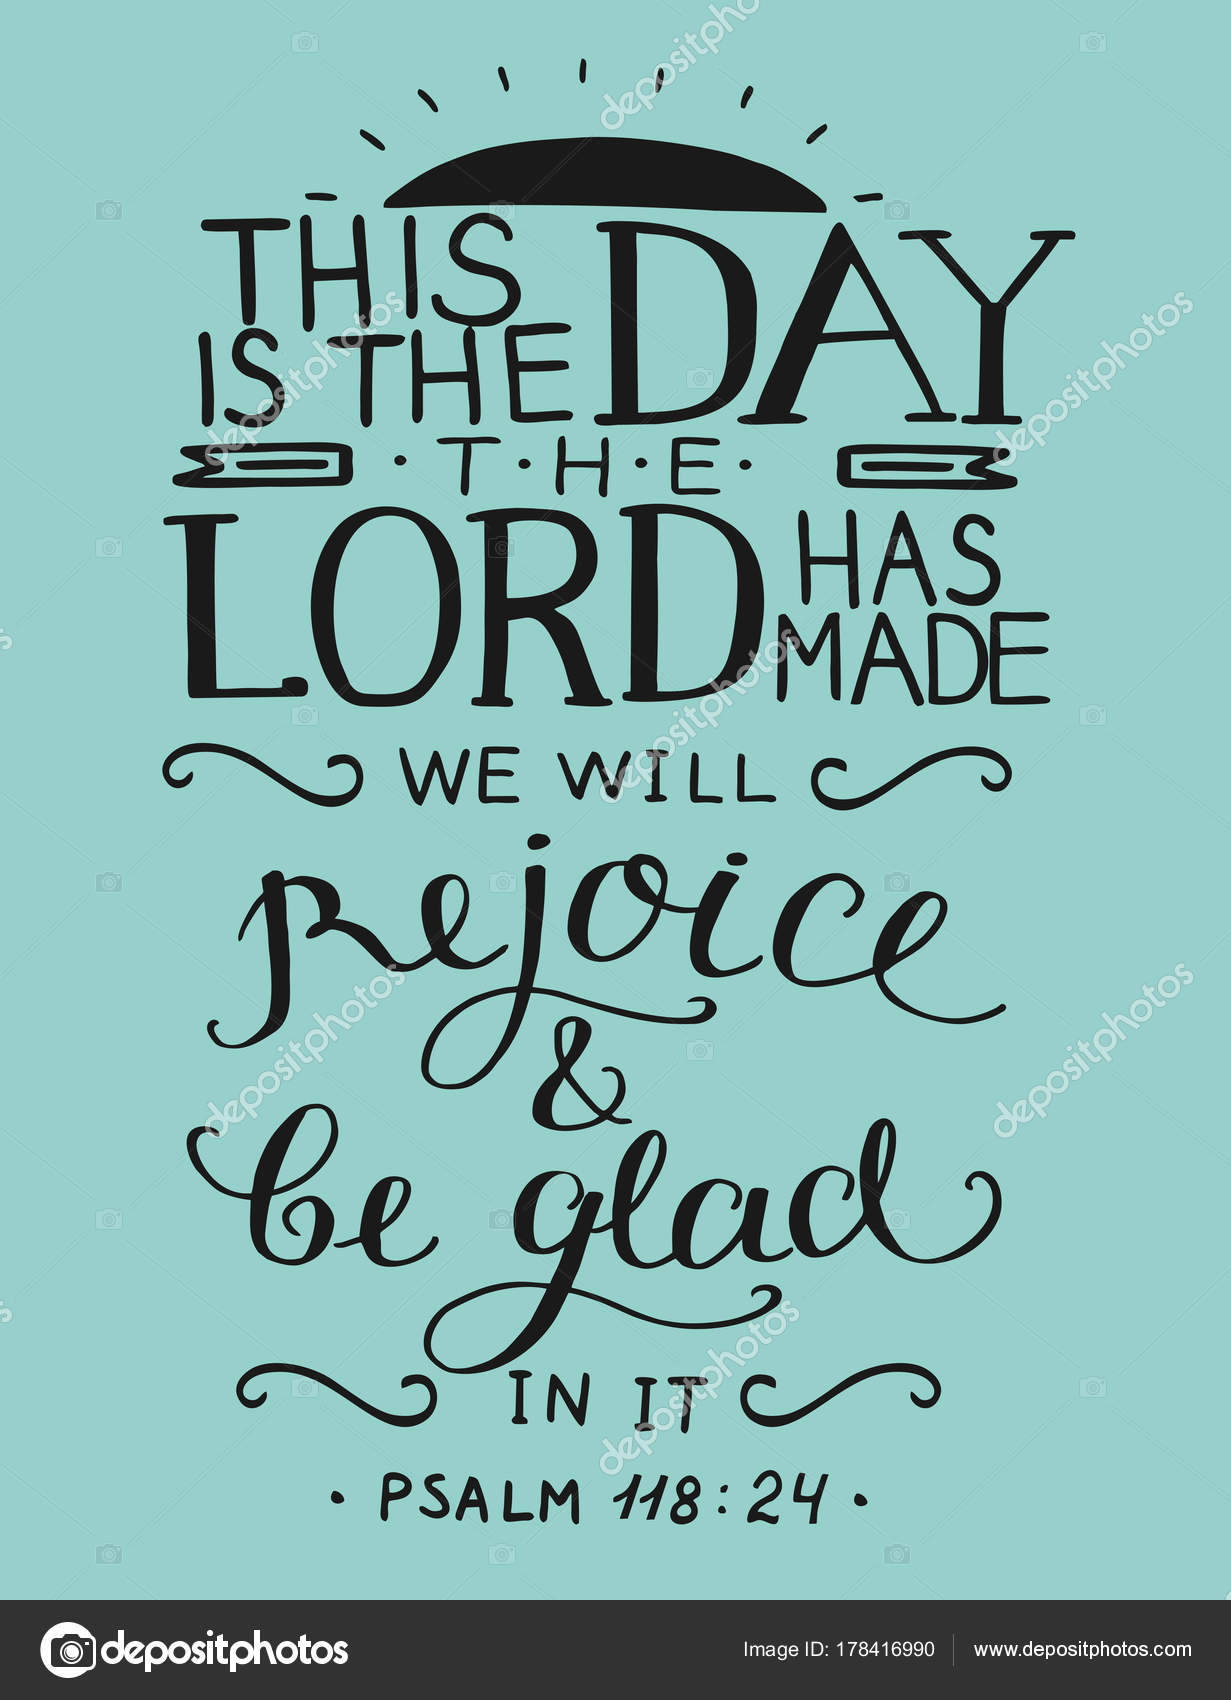 Images: this is the day the lord has made | Bible verse This